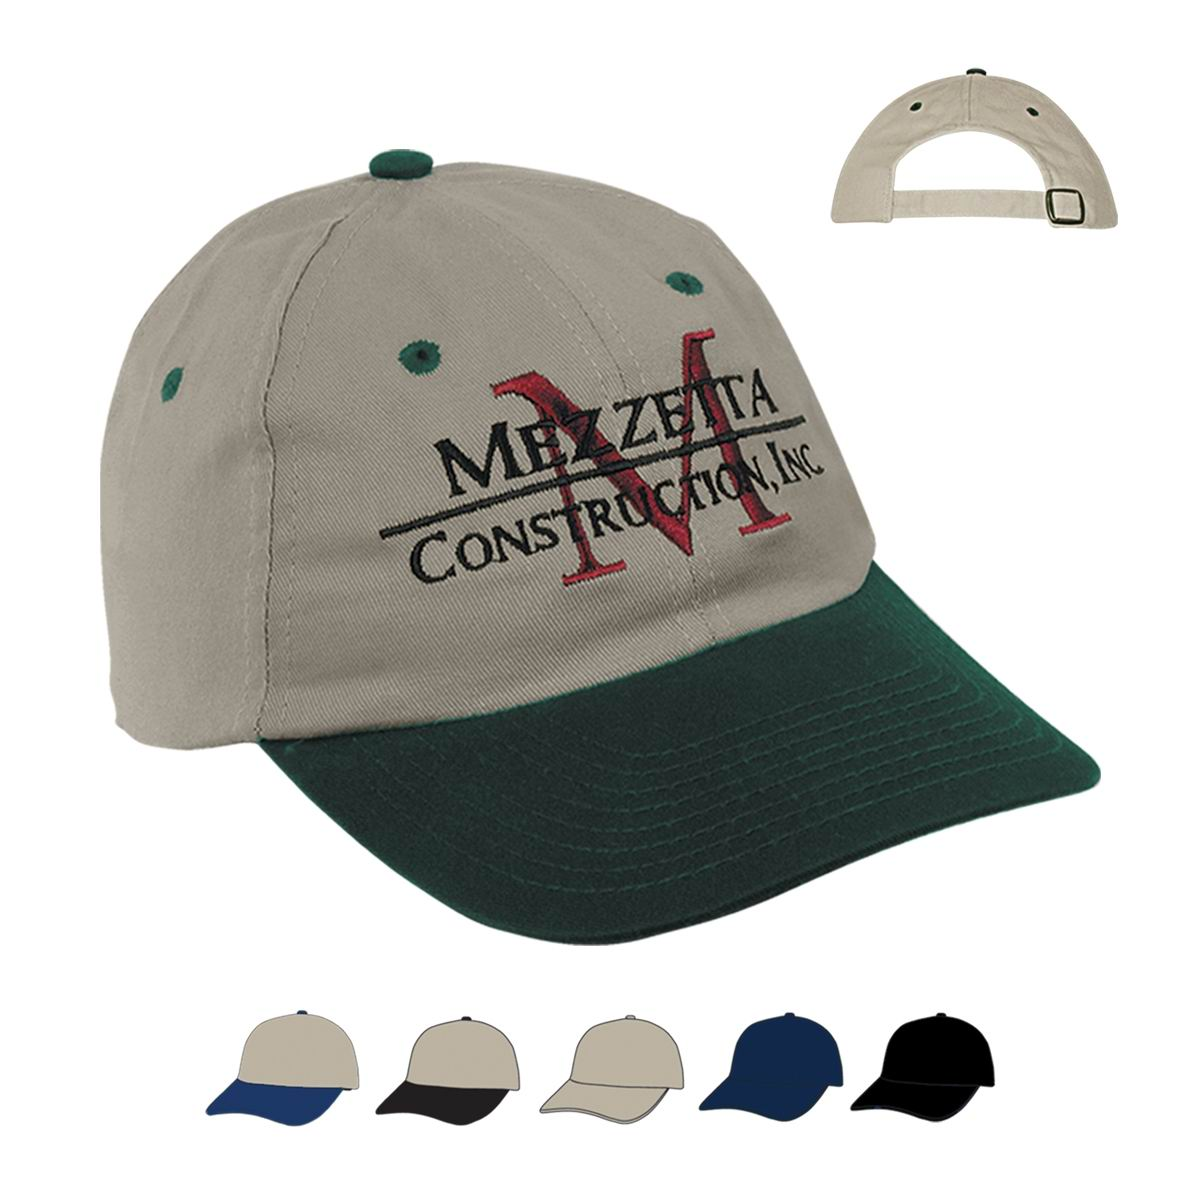 Corporation 6 panel two tone cap